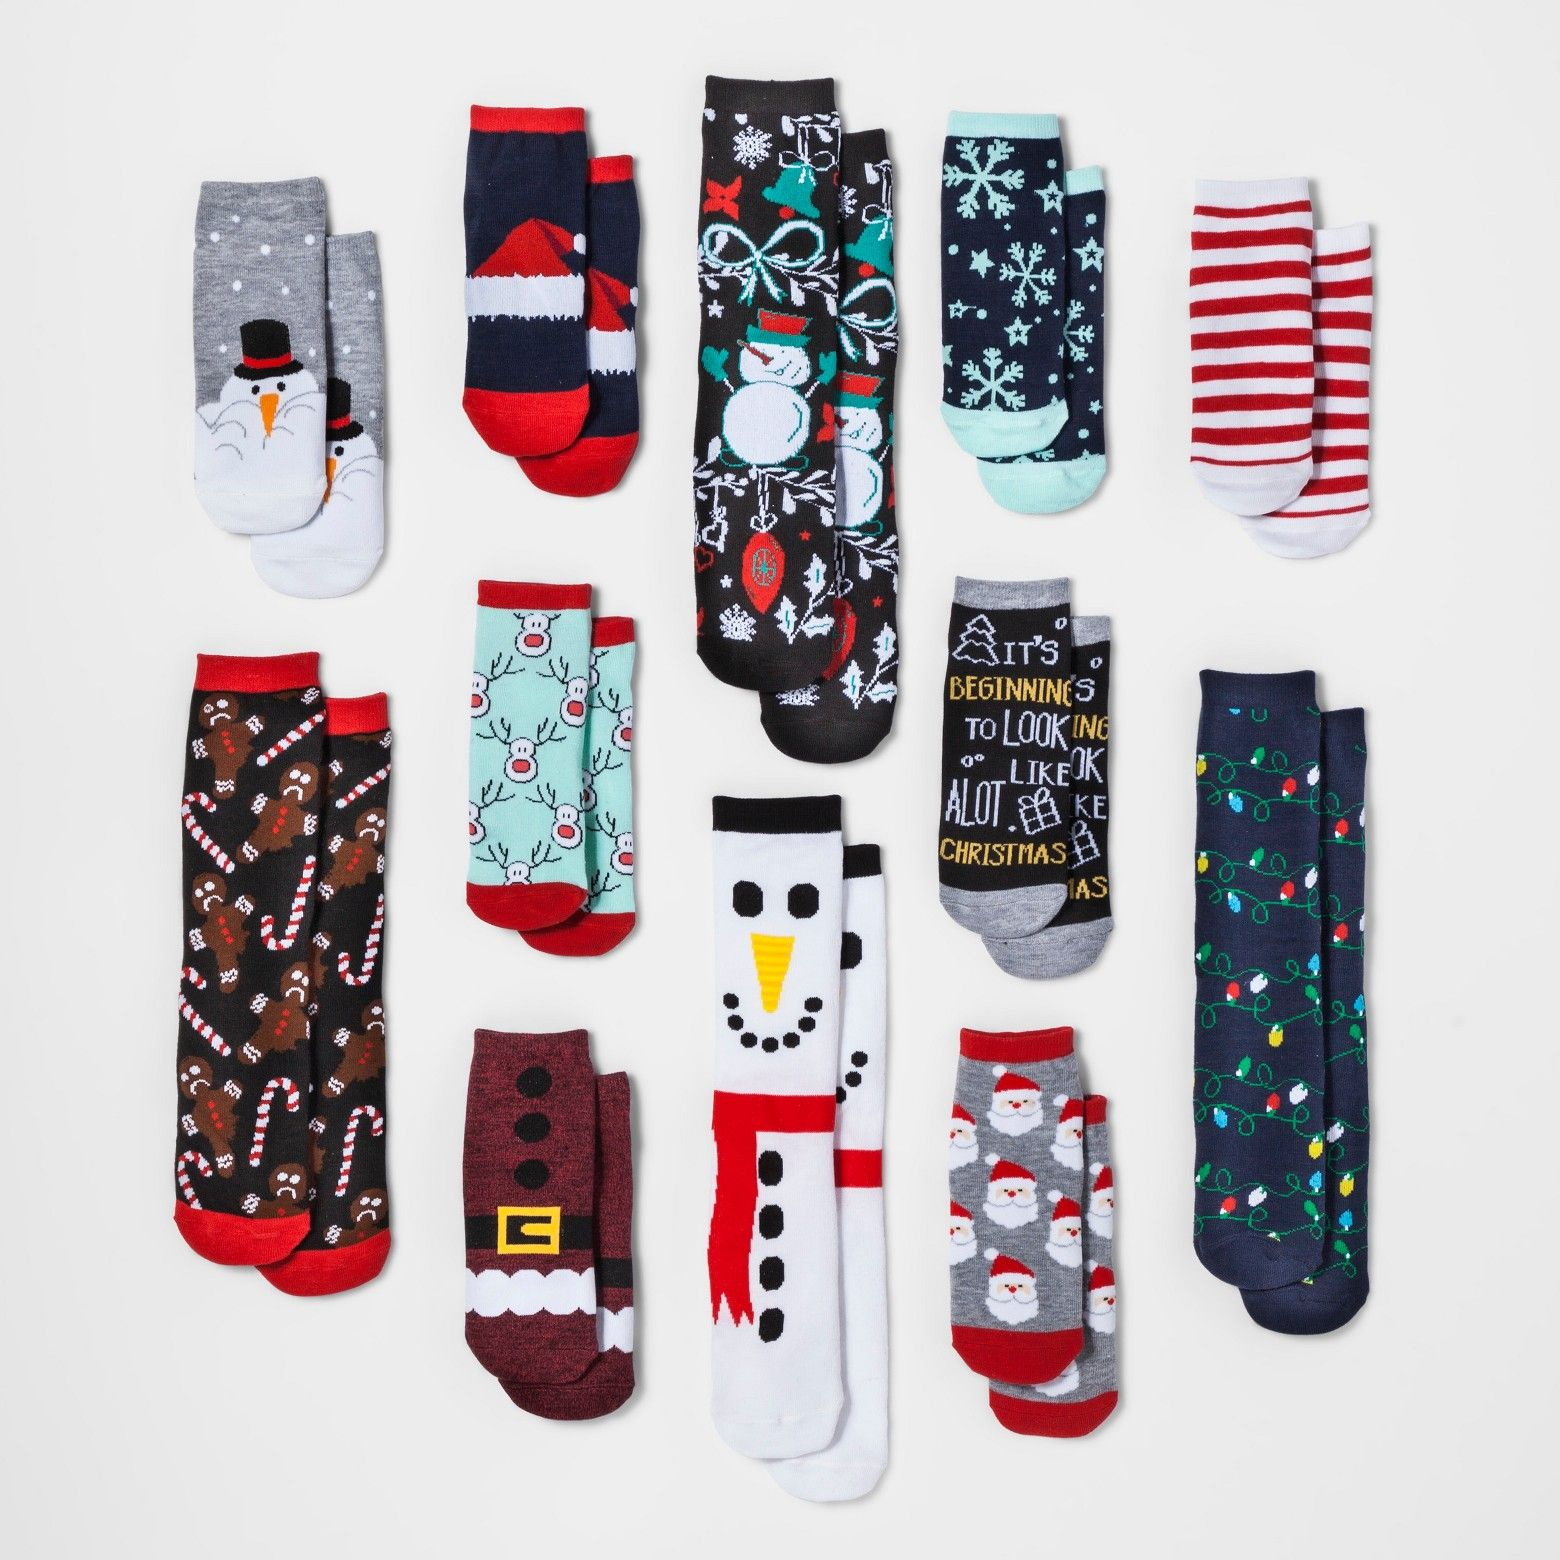 Who Needs A Partridge In A Pear Tree When You Can Have Socks In A Holiday Box Instead The Winter 12 Days Of Socks Set Christmas Socks Winter Target Christmas